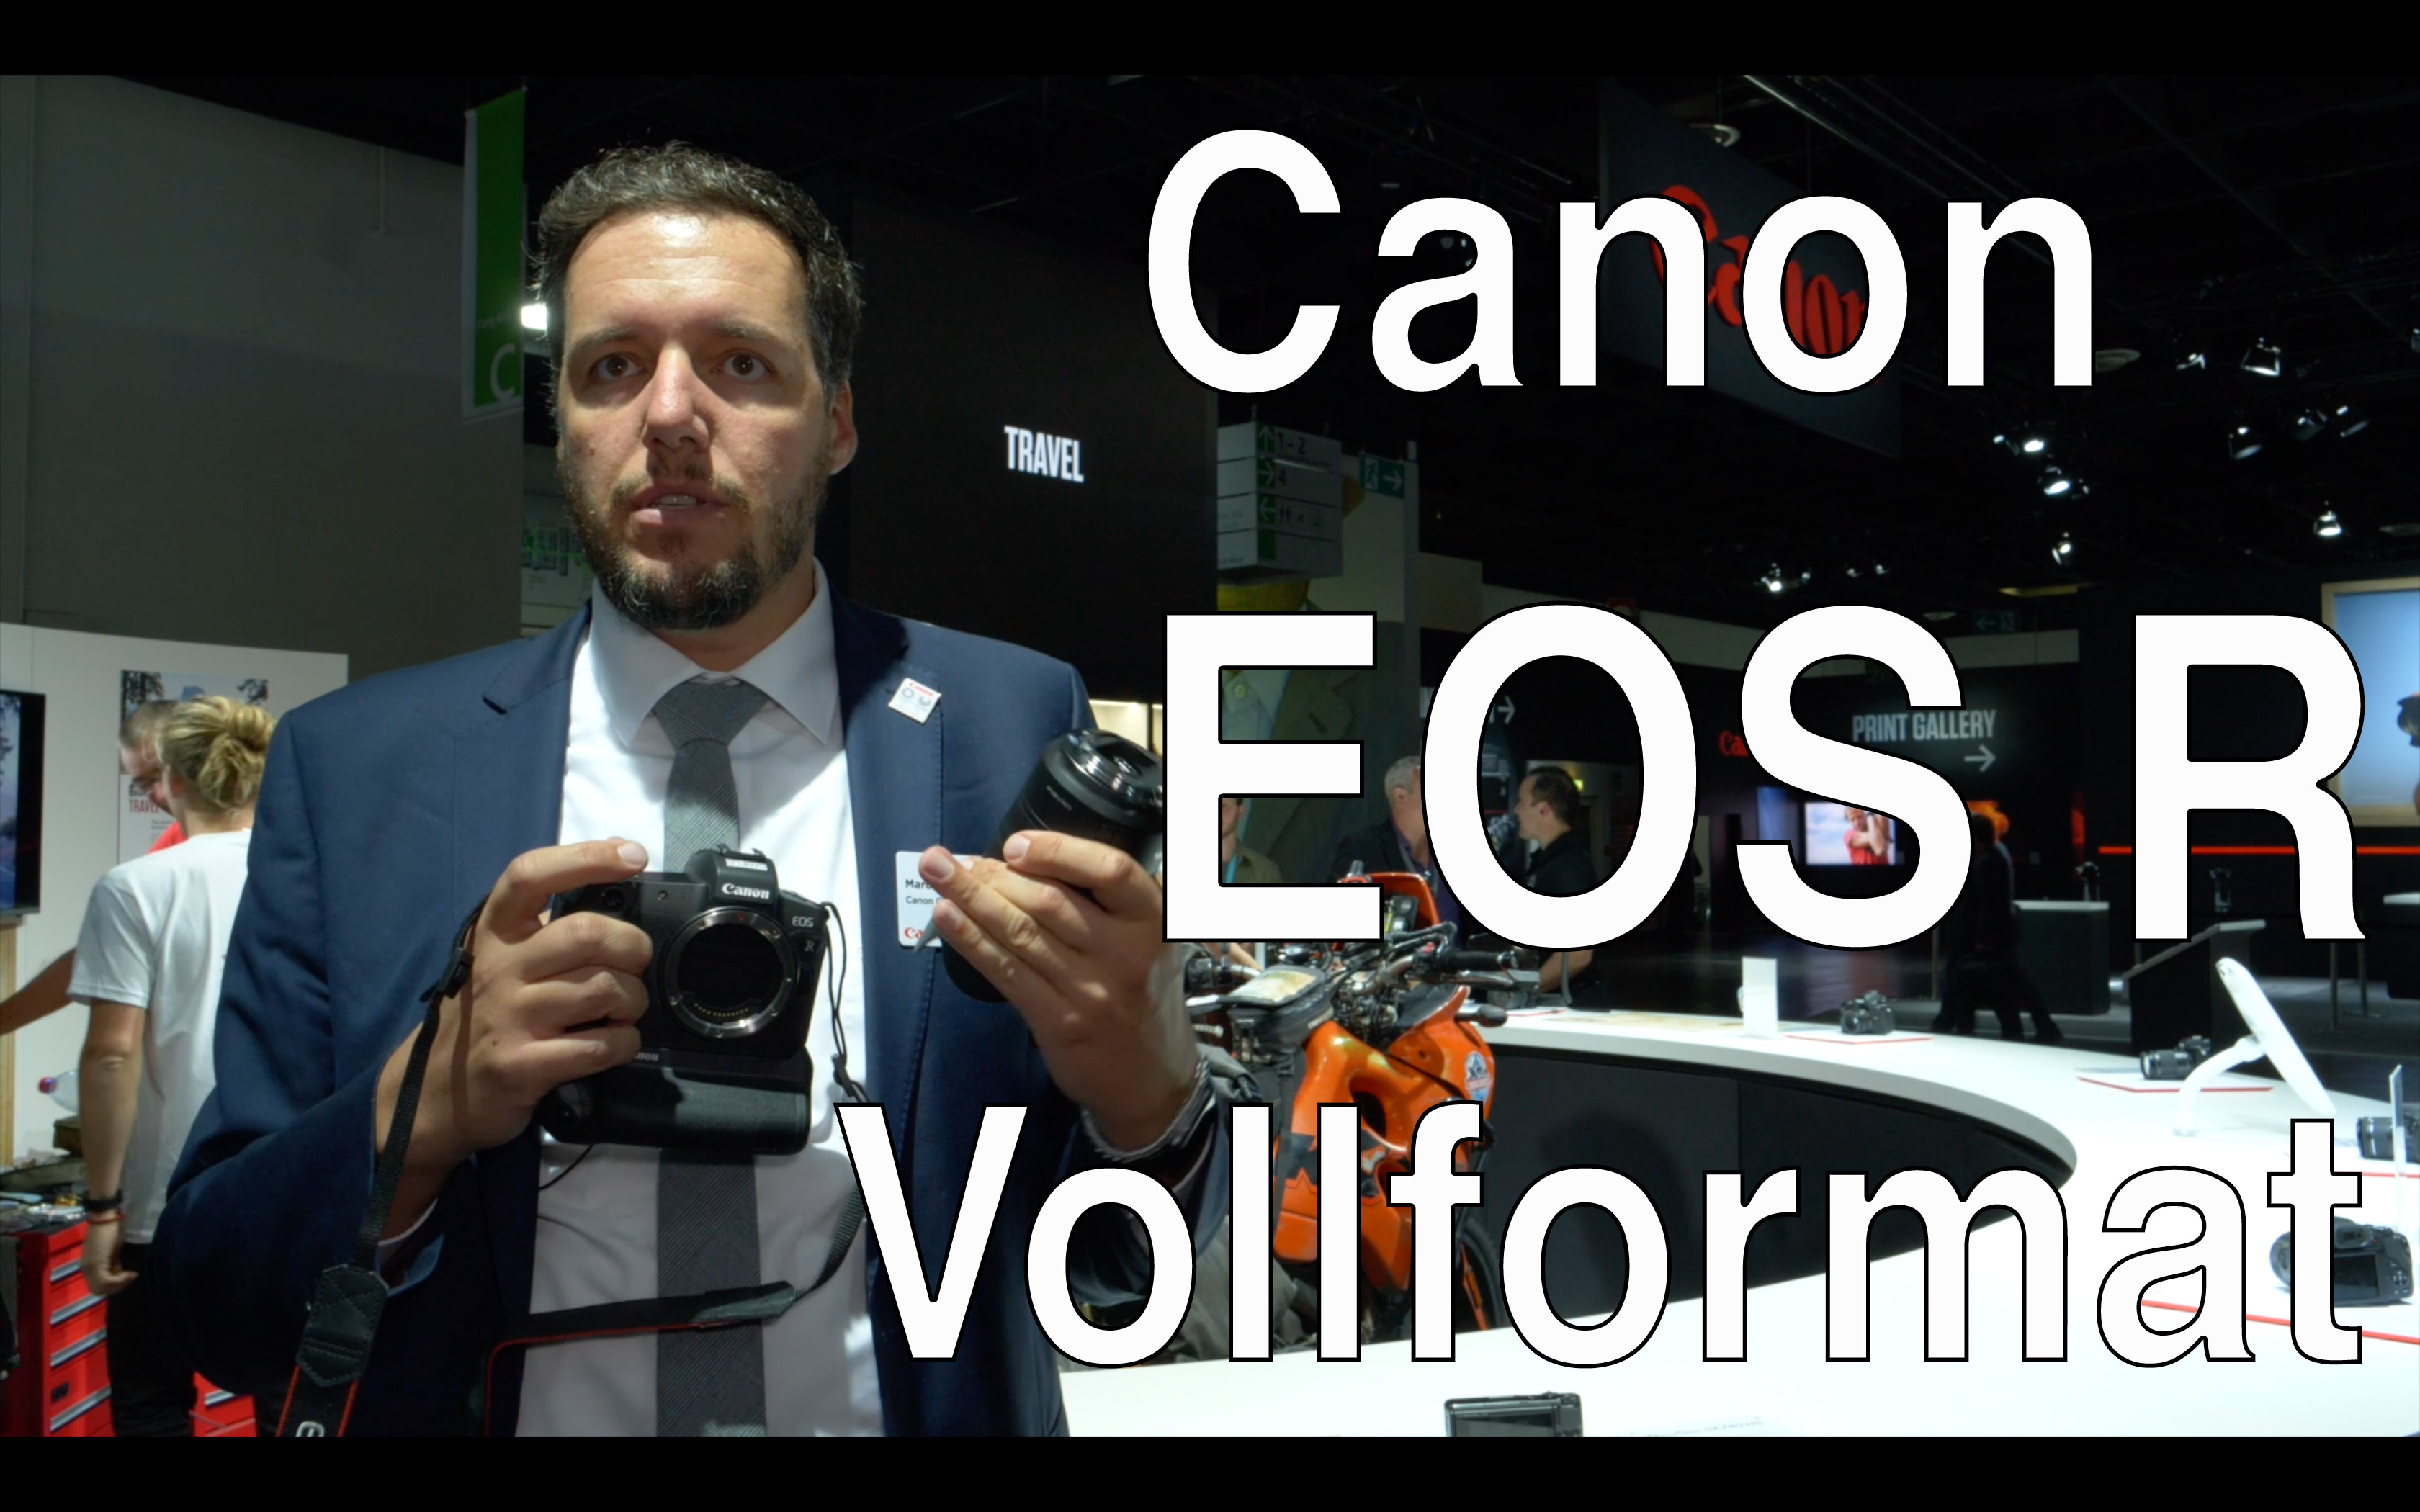 Videoimterview: .Canon EOS R: 10 Bit 4K Out, Dual Pixel AF via Touchscreen, Ergonomics, Availability